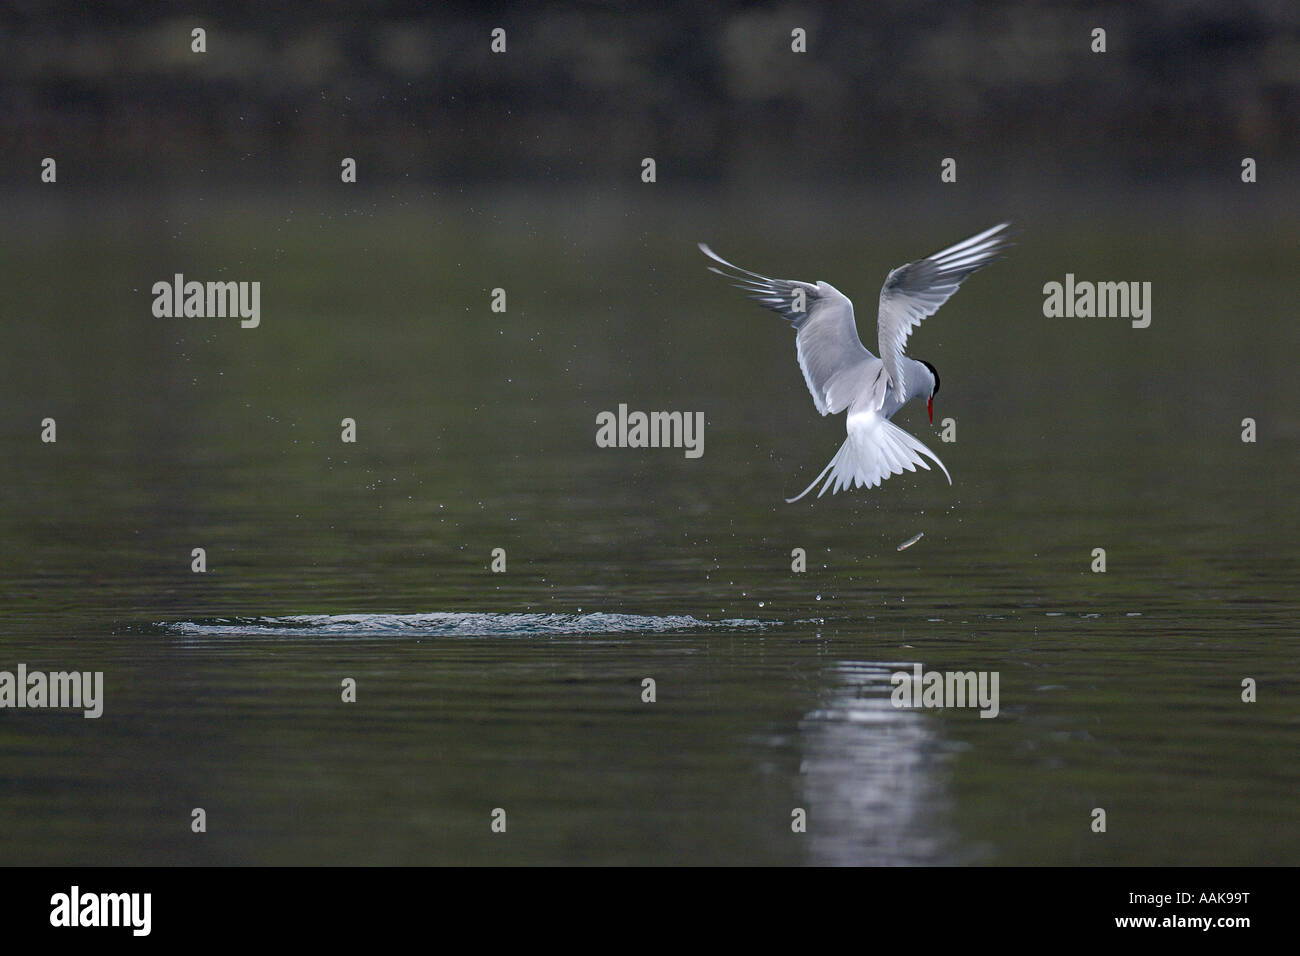 Arctic tern Sterna paradisaea fishing in sea loch Isle of Skye Scotland June 2007 - Stock Image